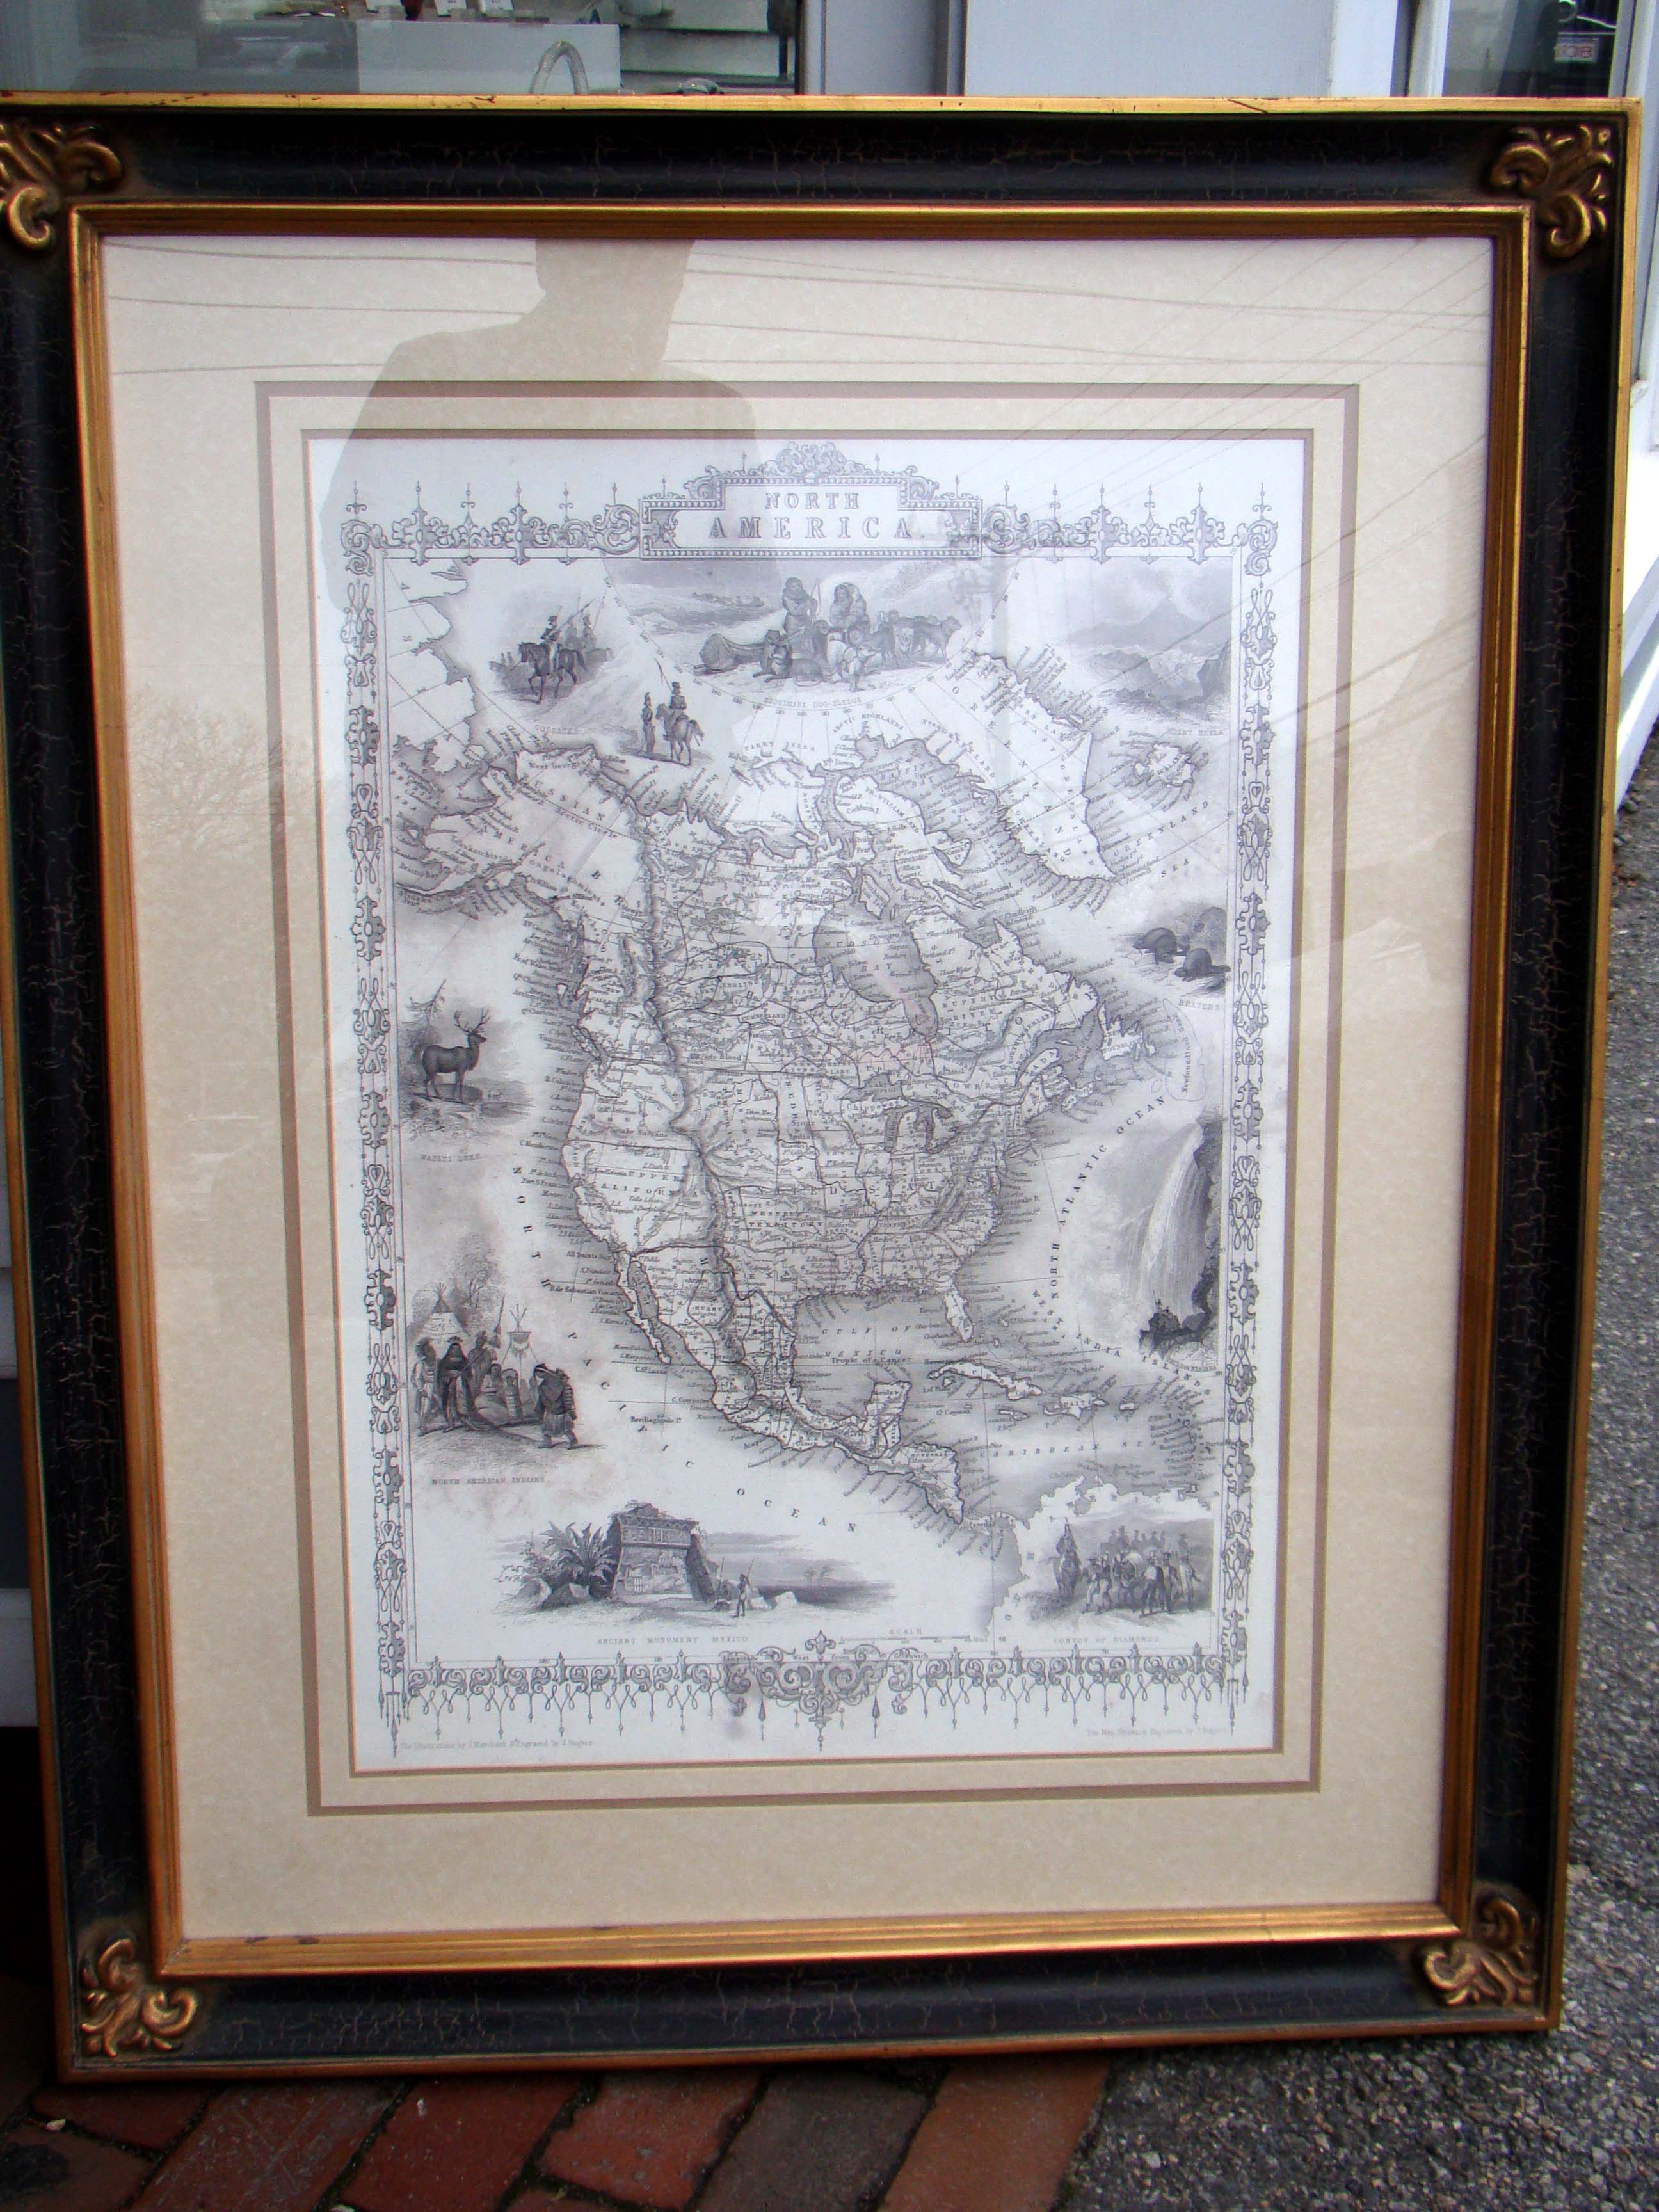 click to view detailed description of A fine reprint of the famous Map of North America drawn and engraved by John Rapkin in 1851